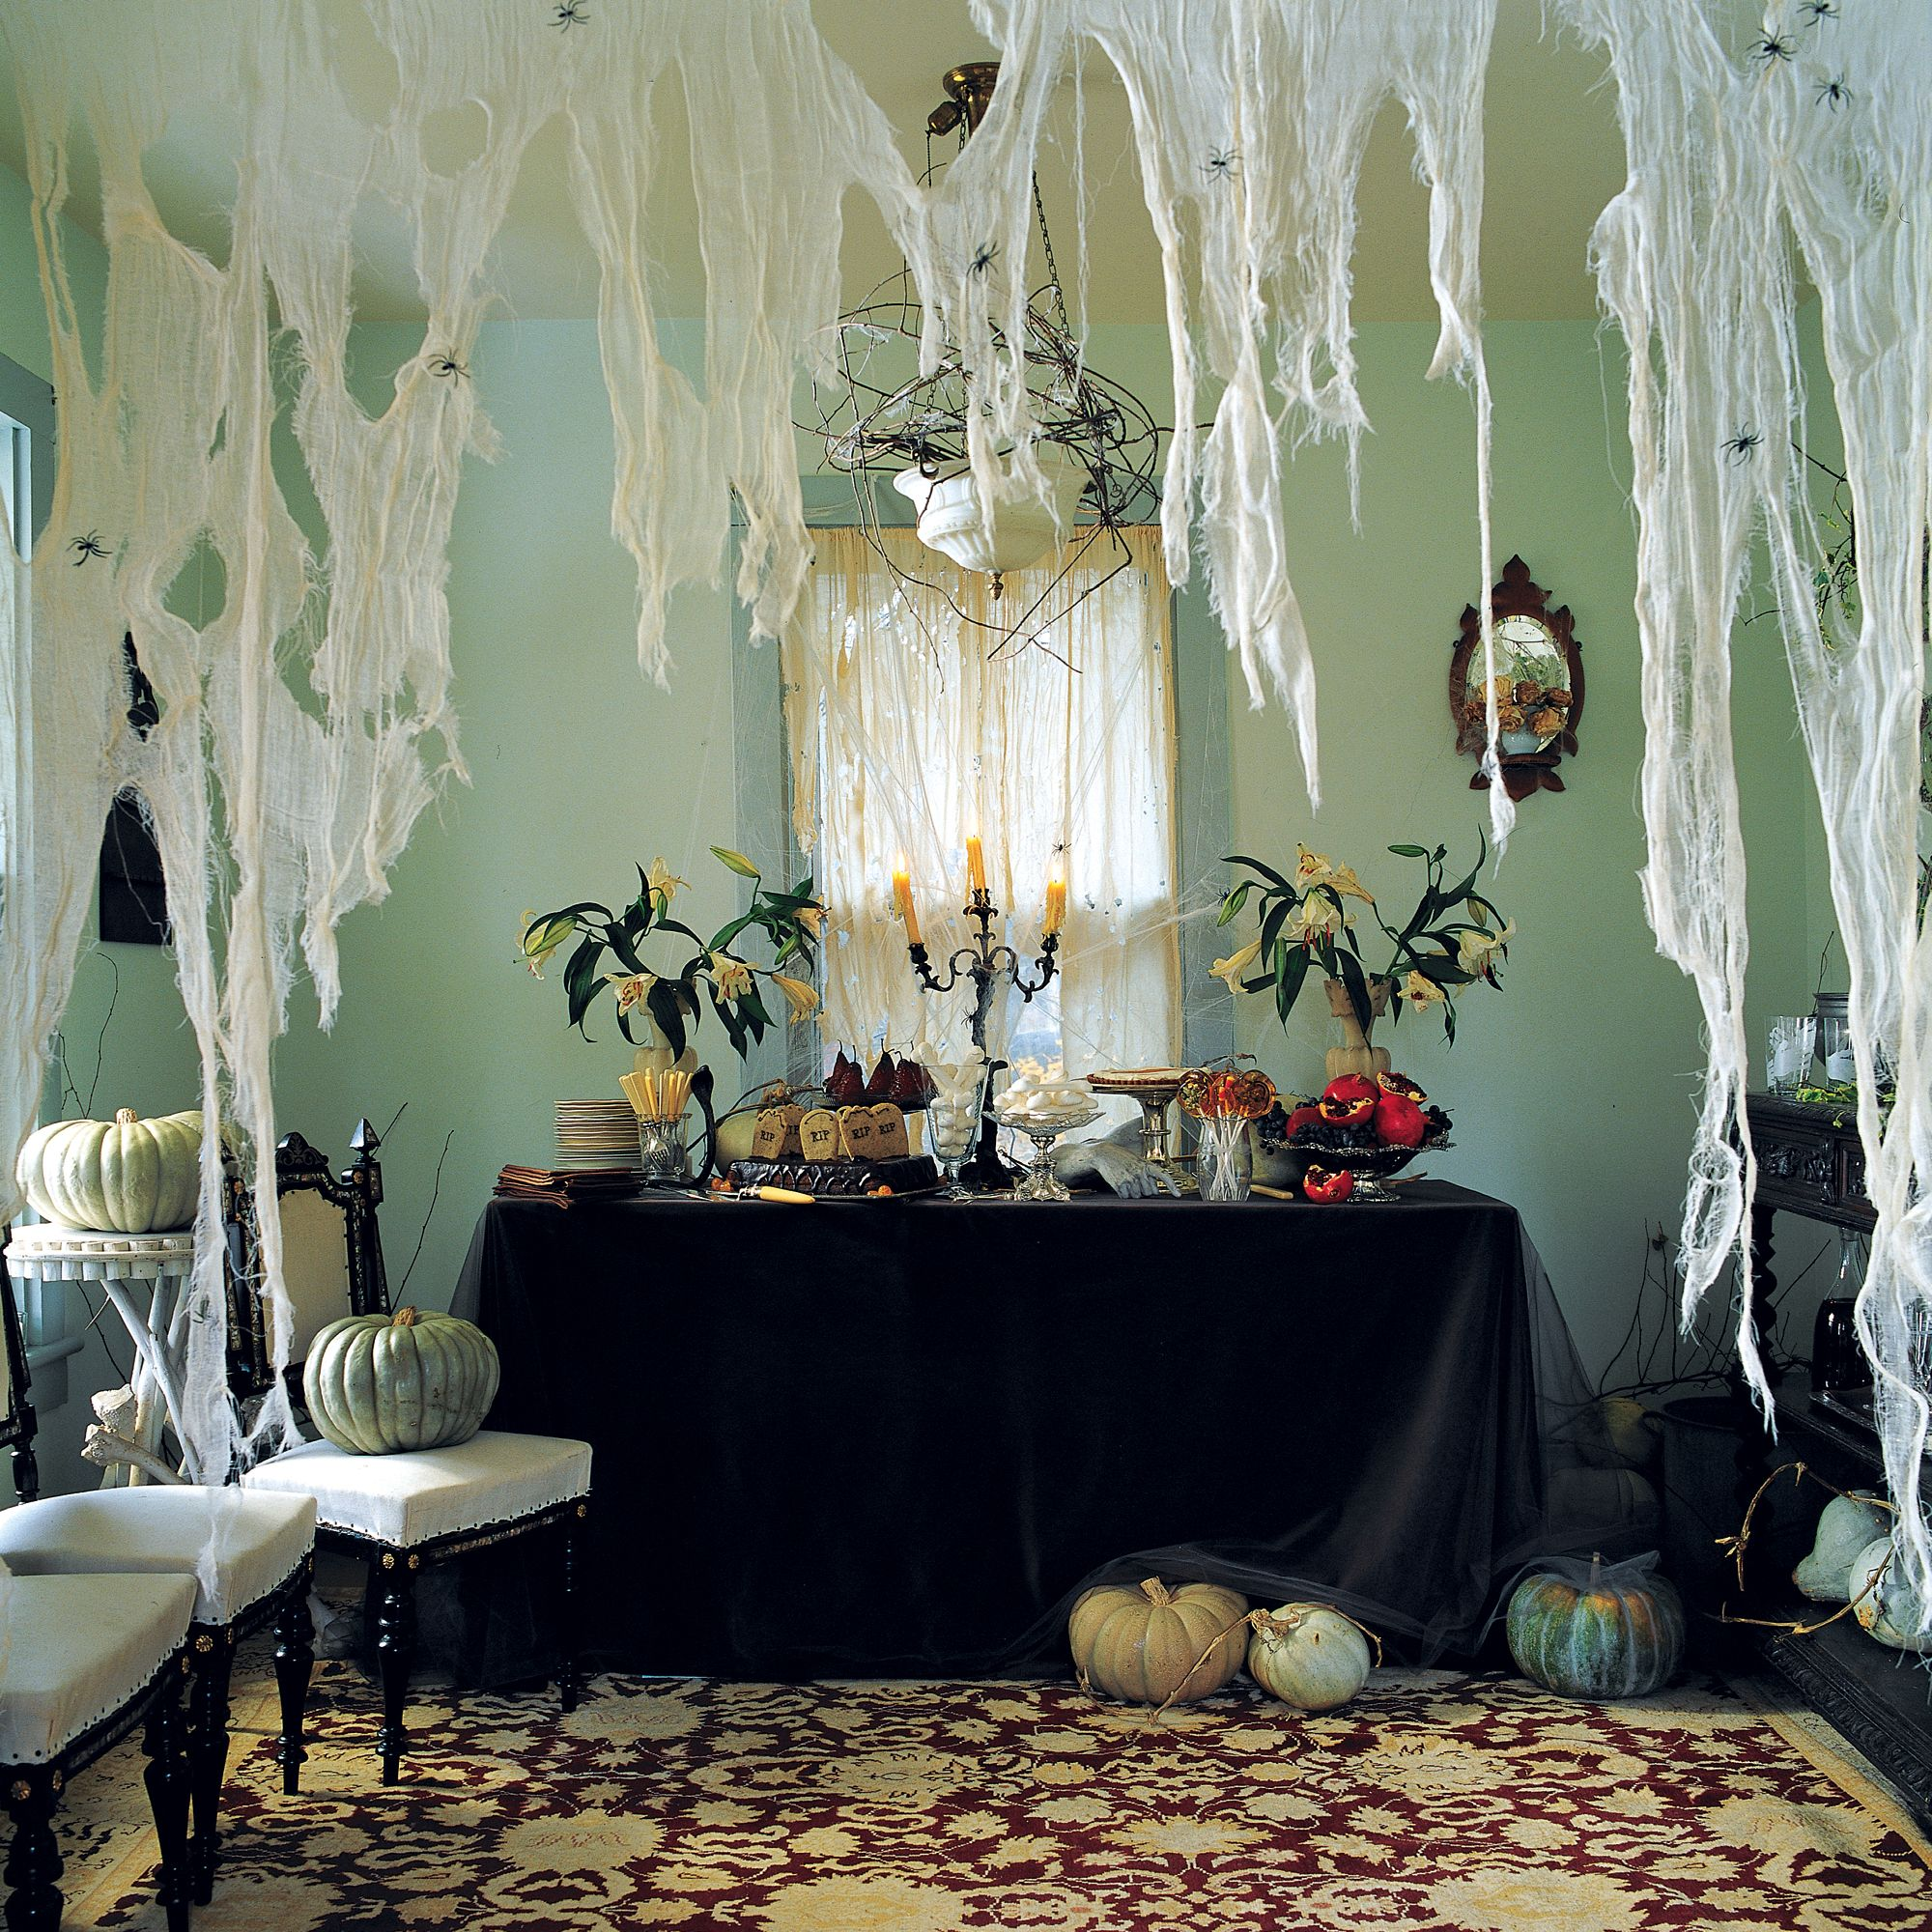 Indoor Halloween Decorations Diy halloween party decorations, Fun - halloween decorations diy